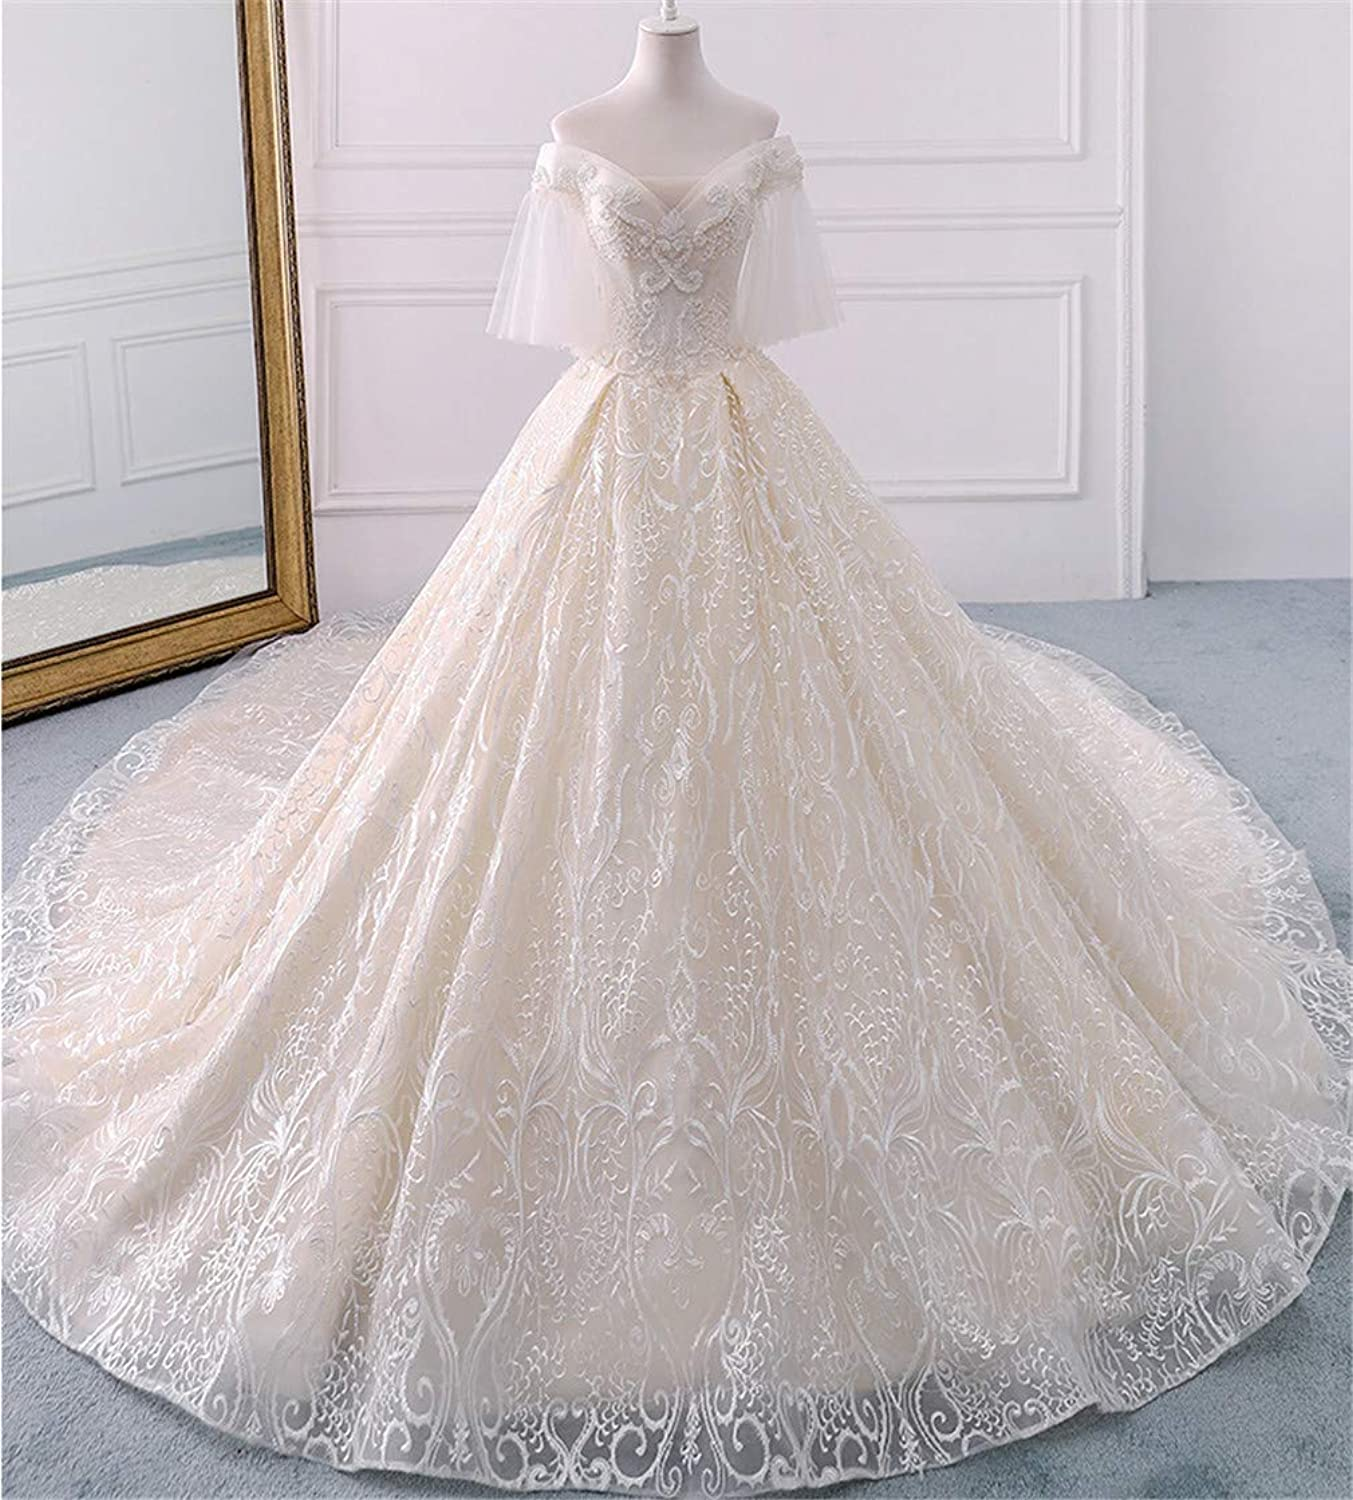 Wedding Dress, Sexy Luxurious Deep VNeck Strapless Strap high Quality Polyester Europe and America Beading Embellishment Trailing Church Wedding Dress